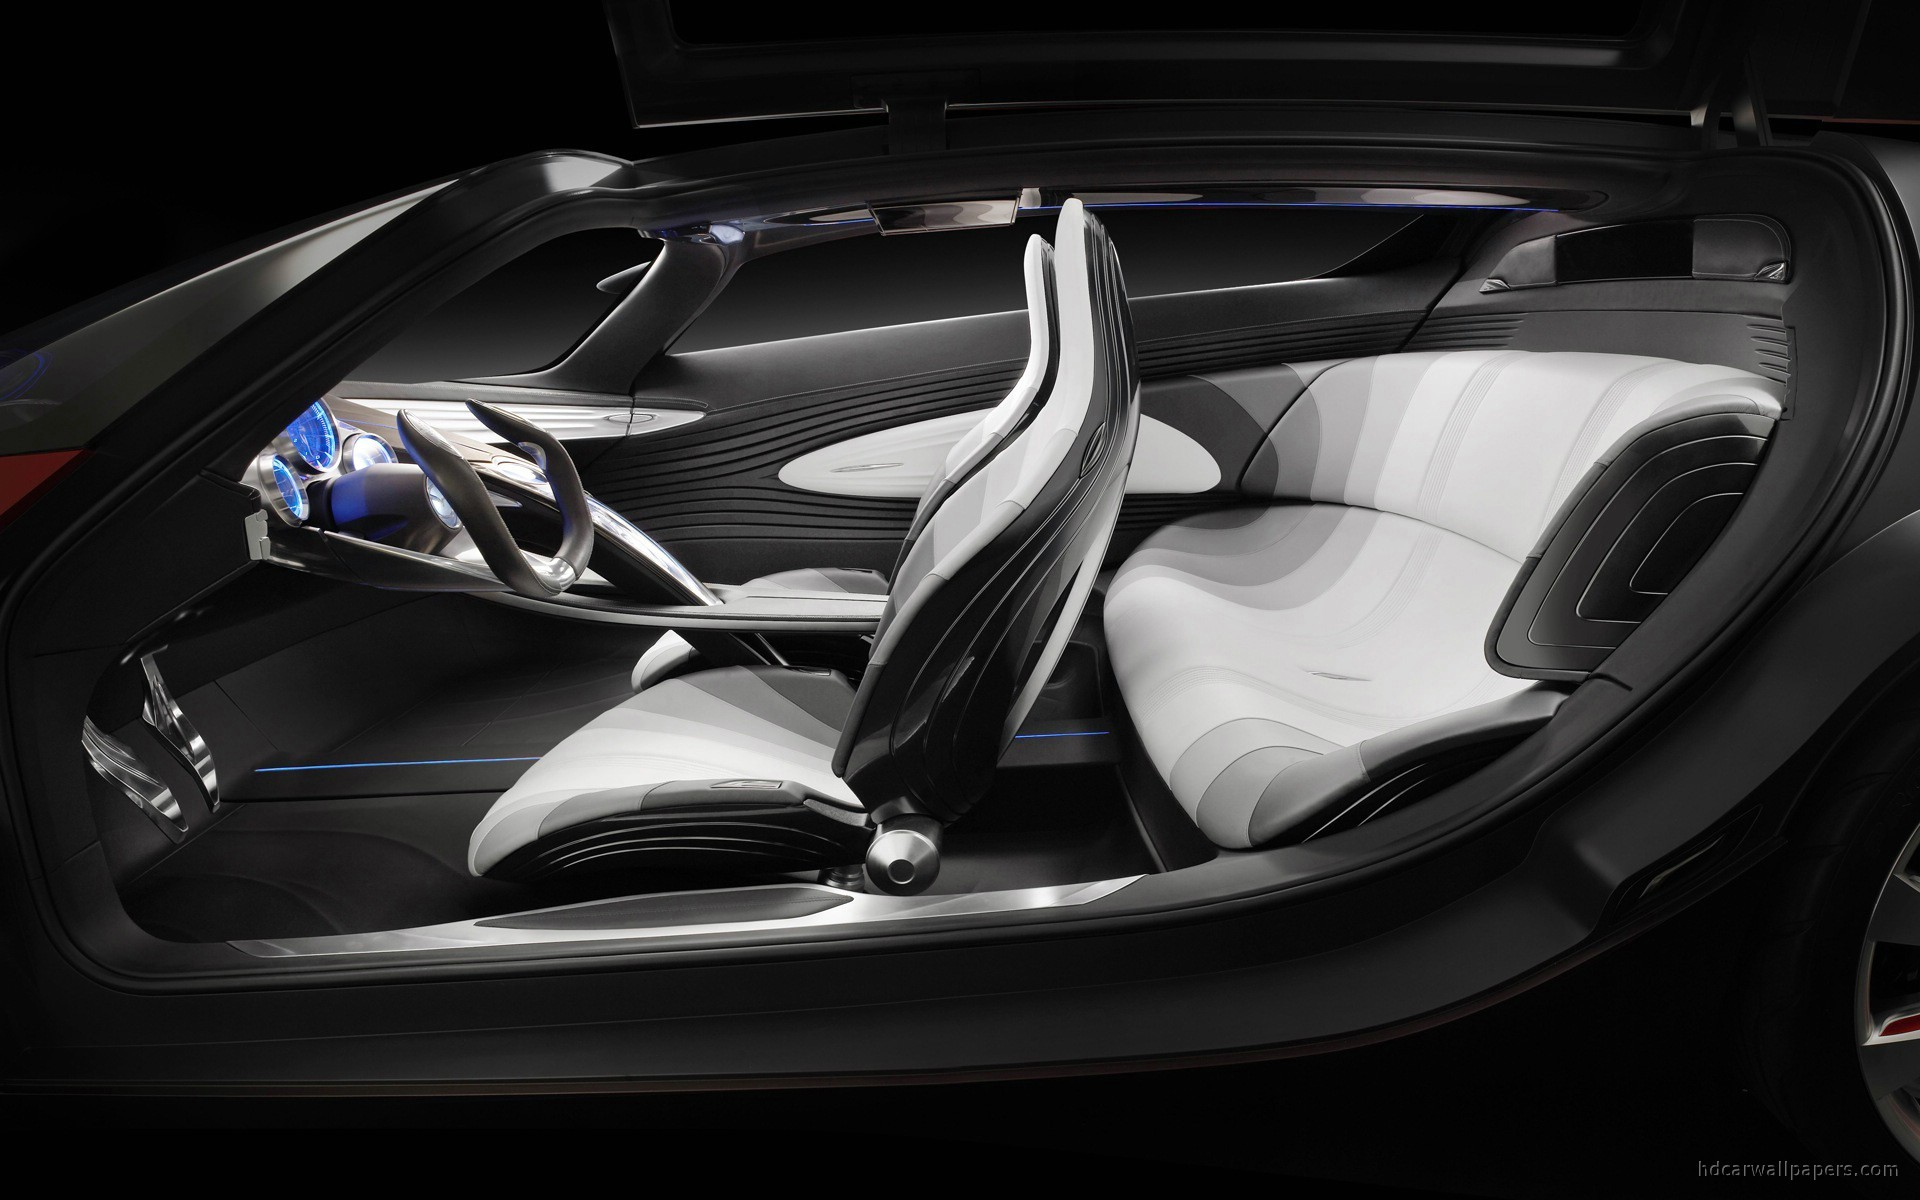 mazda ryuga concept interior wallpaper hd car wallpapers id 1159. Black Bedroom Furniture Sets. Home Design Ideas